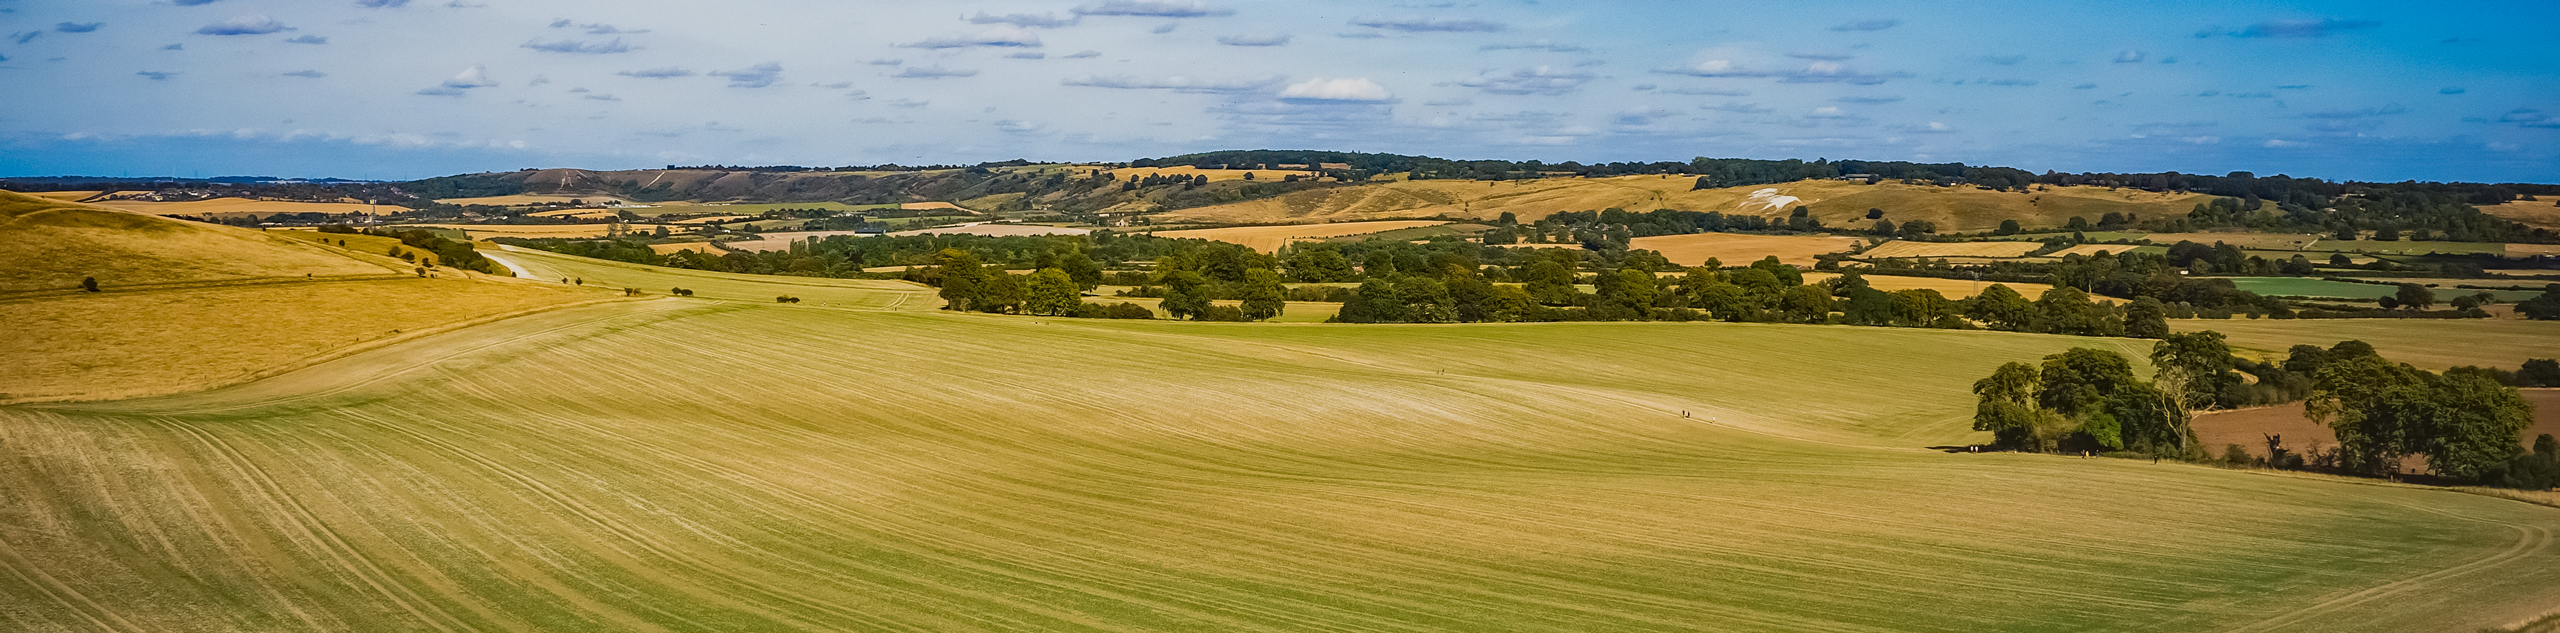 The Rose and Crown Ivinghoe Beacon Walk